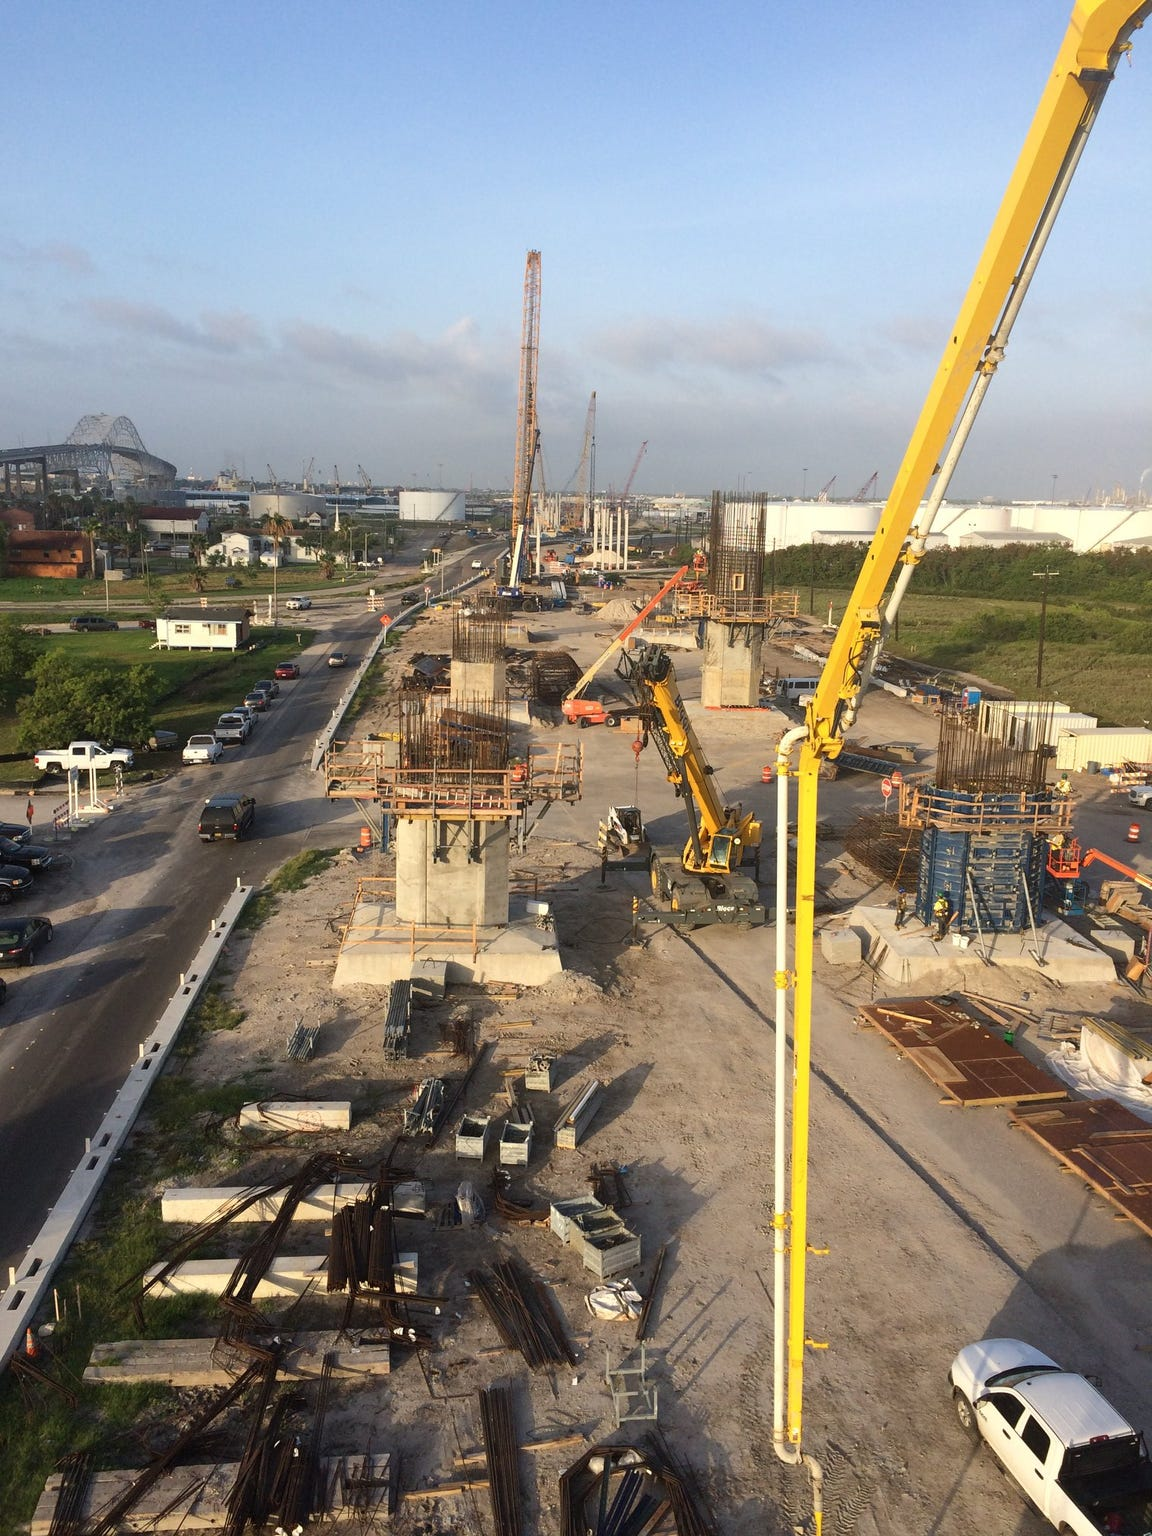 Construction crews work on the new Harbor Bridge project.